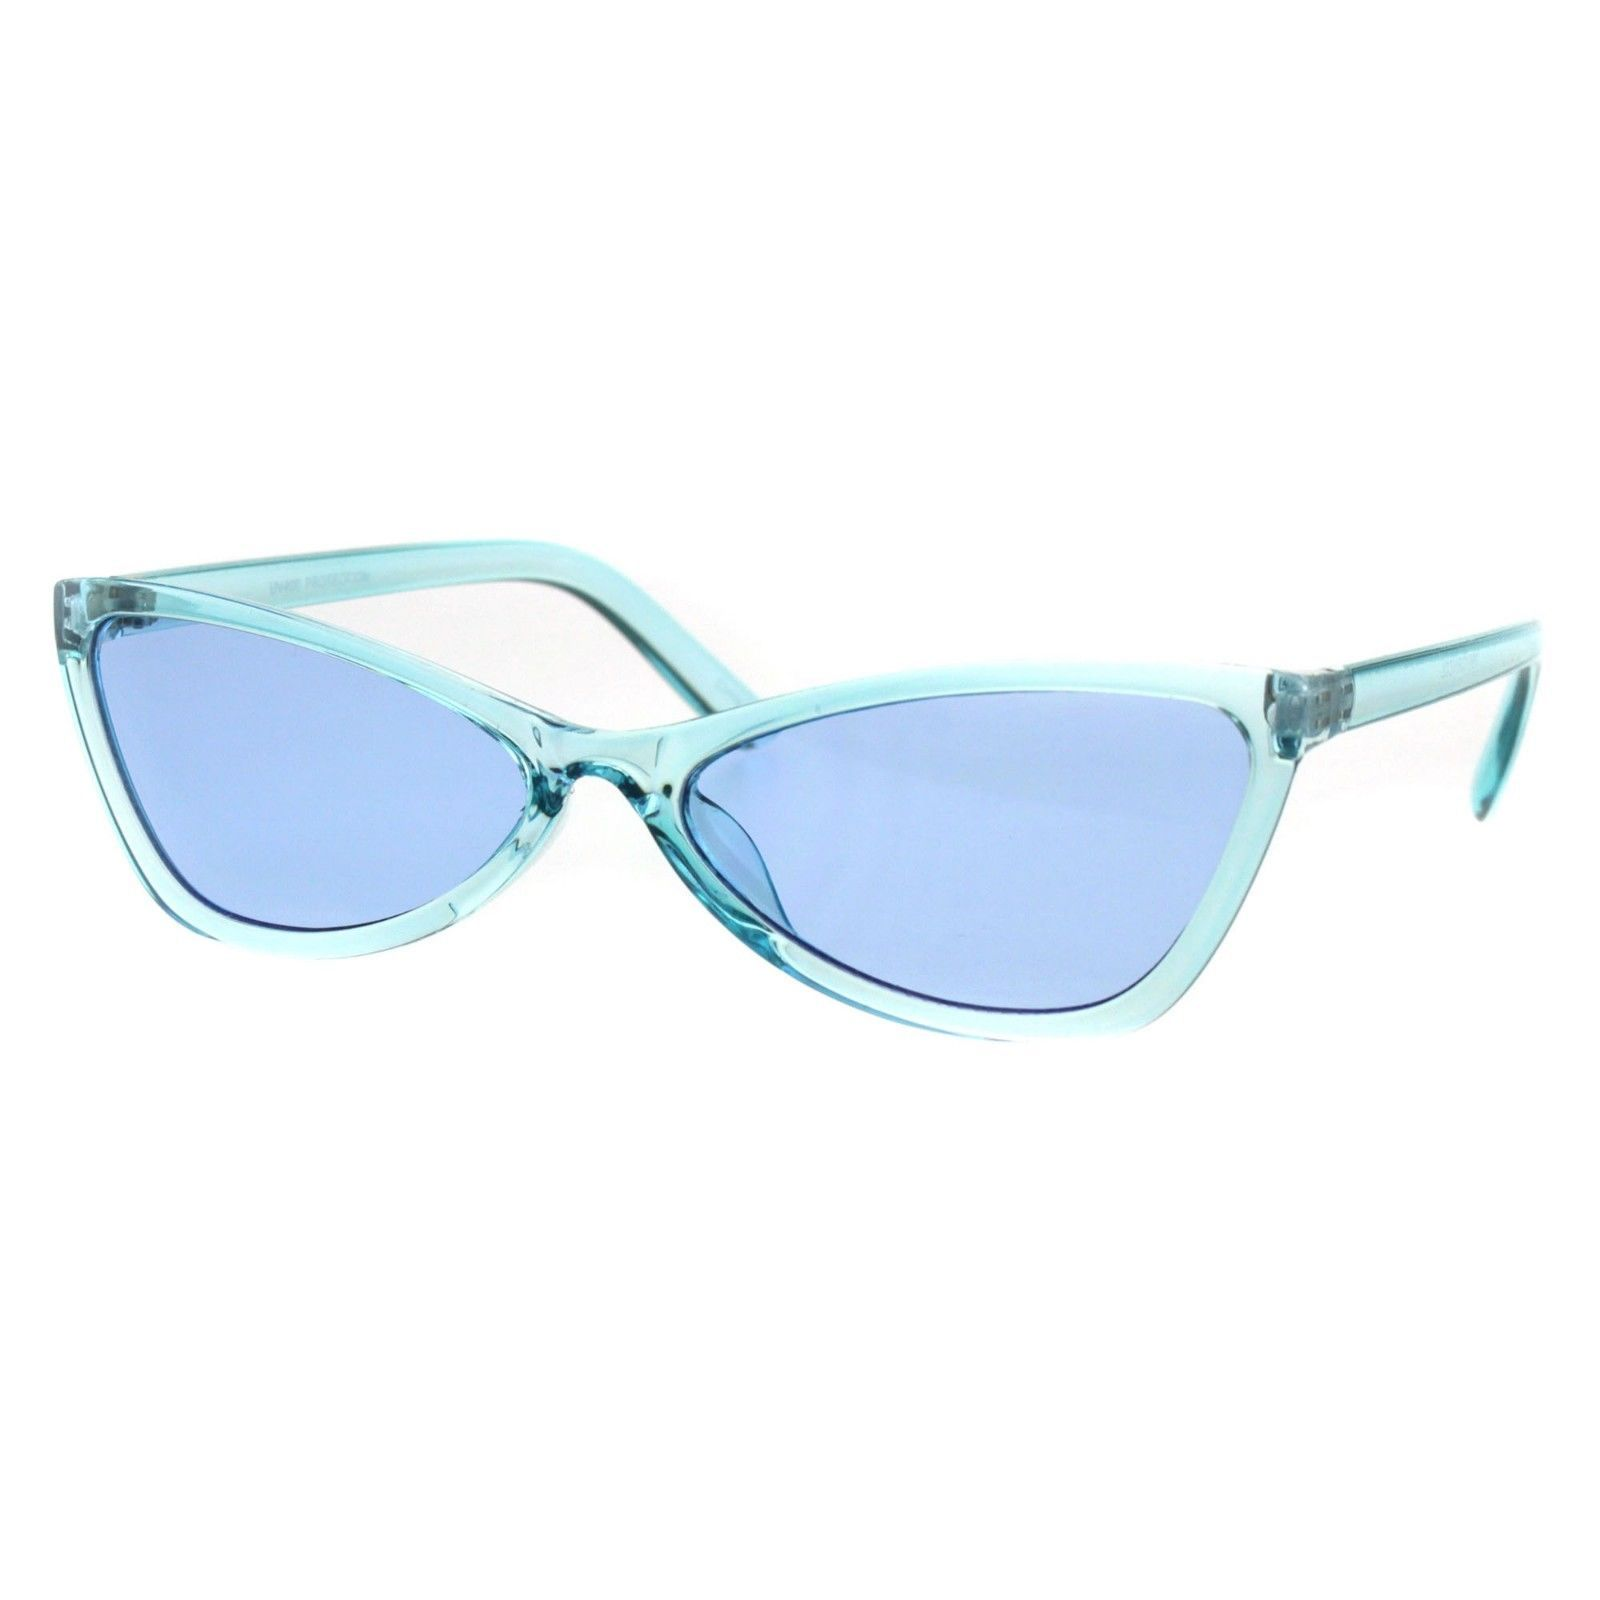 Wide Cateye Butterfly Sunglasses Womens Trendy Translucent Color Frame